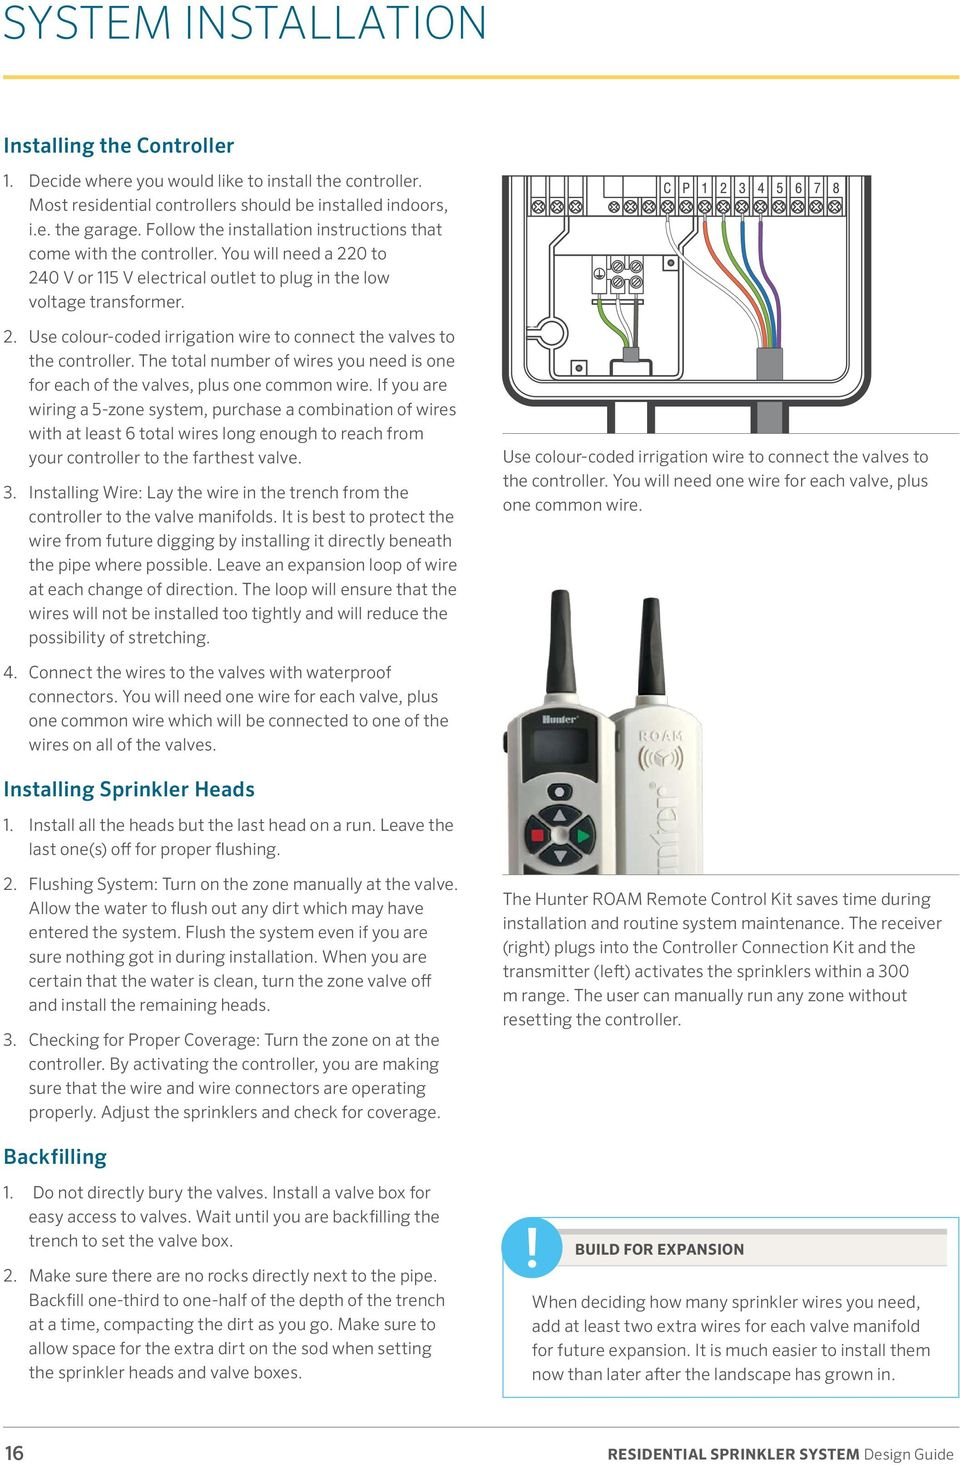 Residential Sprinkler System Pdf Zone Wiring Box The Total Number Of Wires You Need Is One For Each Valves Plus